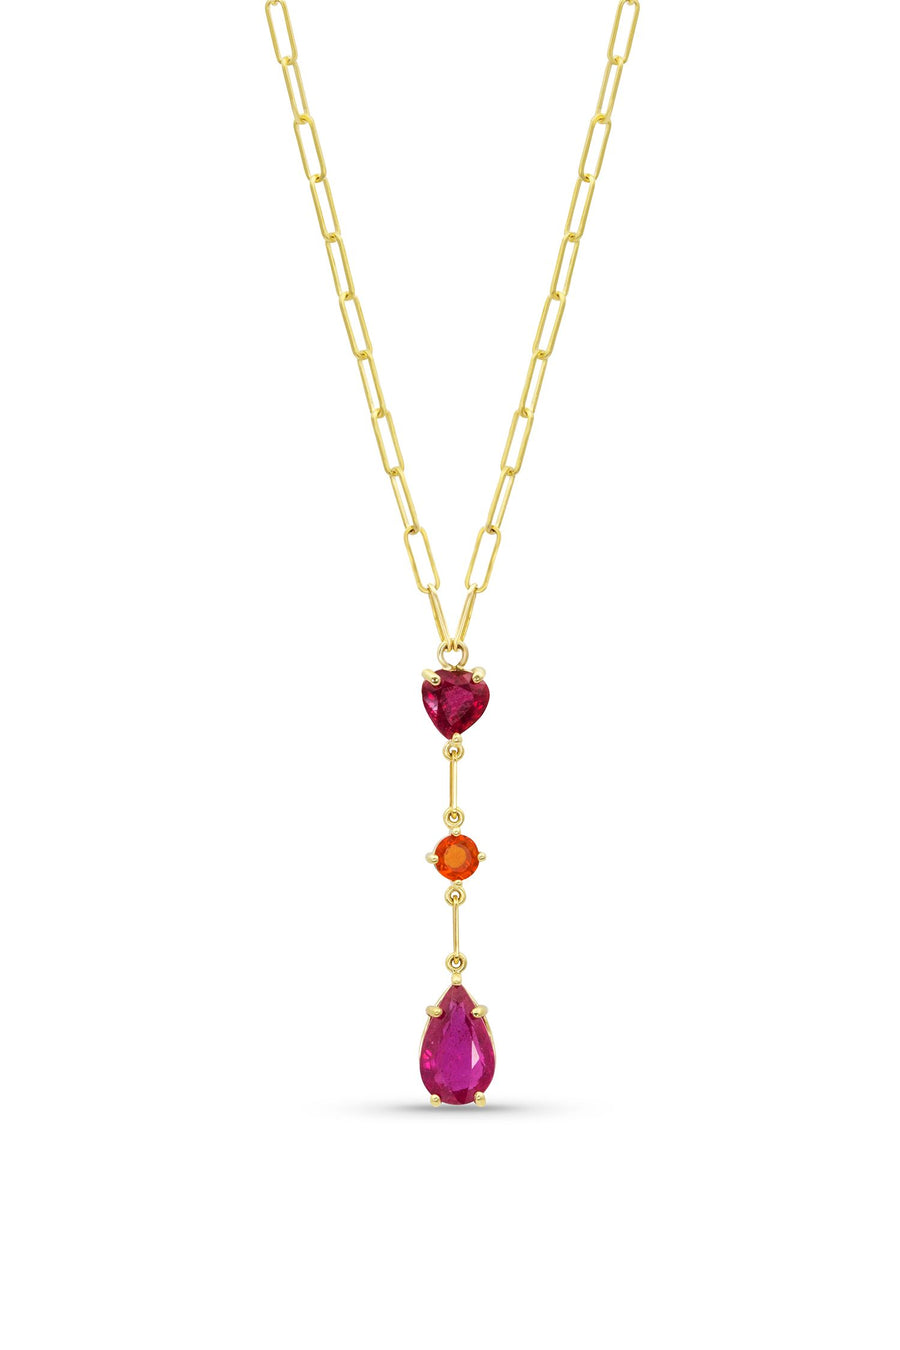 Design Your Own Gemdrop Necklace - Triple Drop - Jo Latham